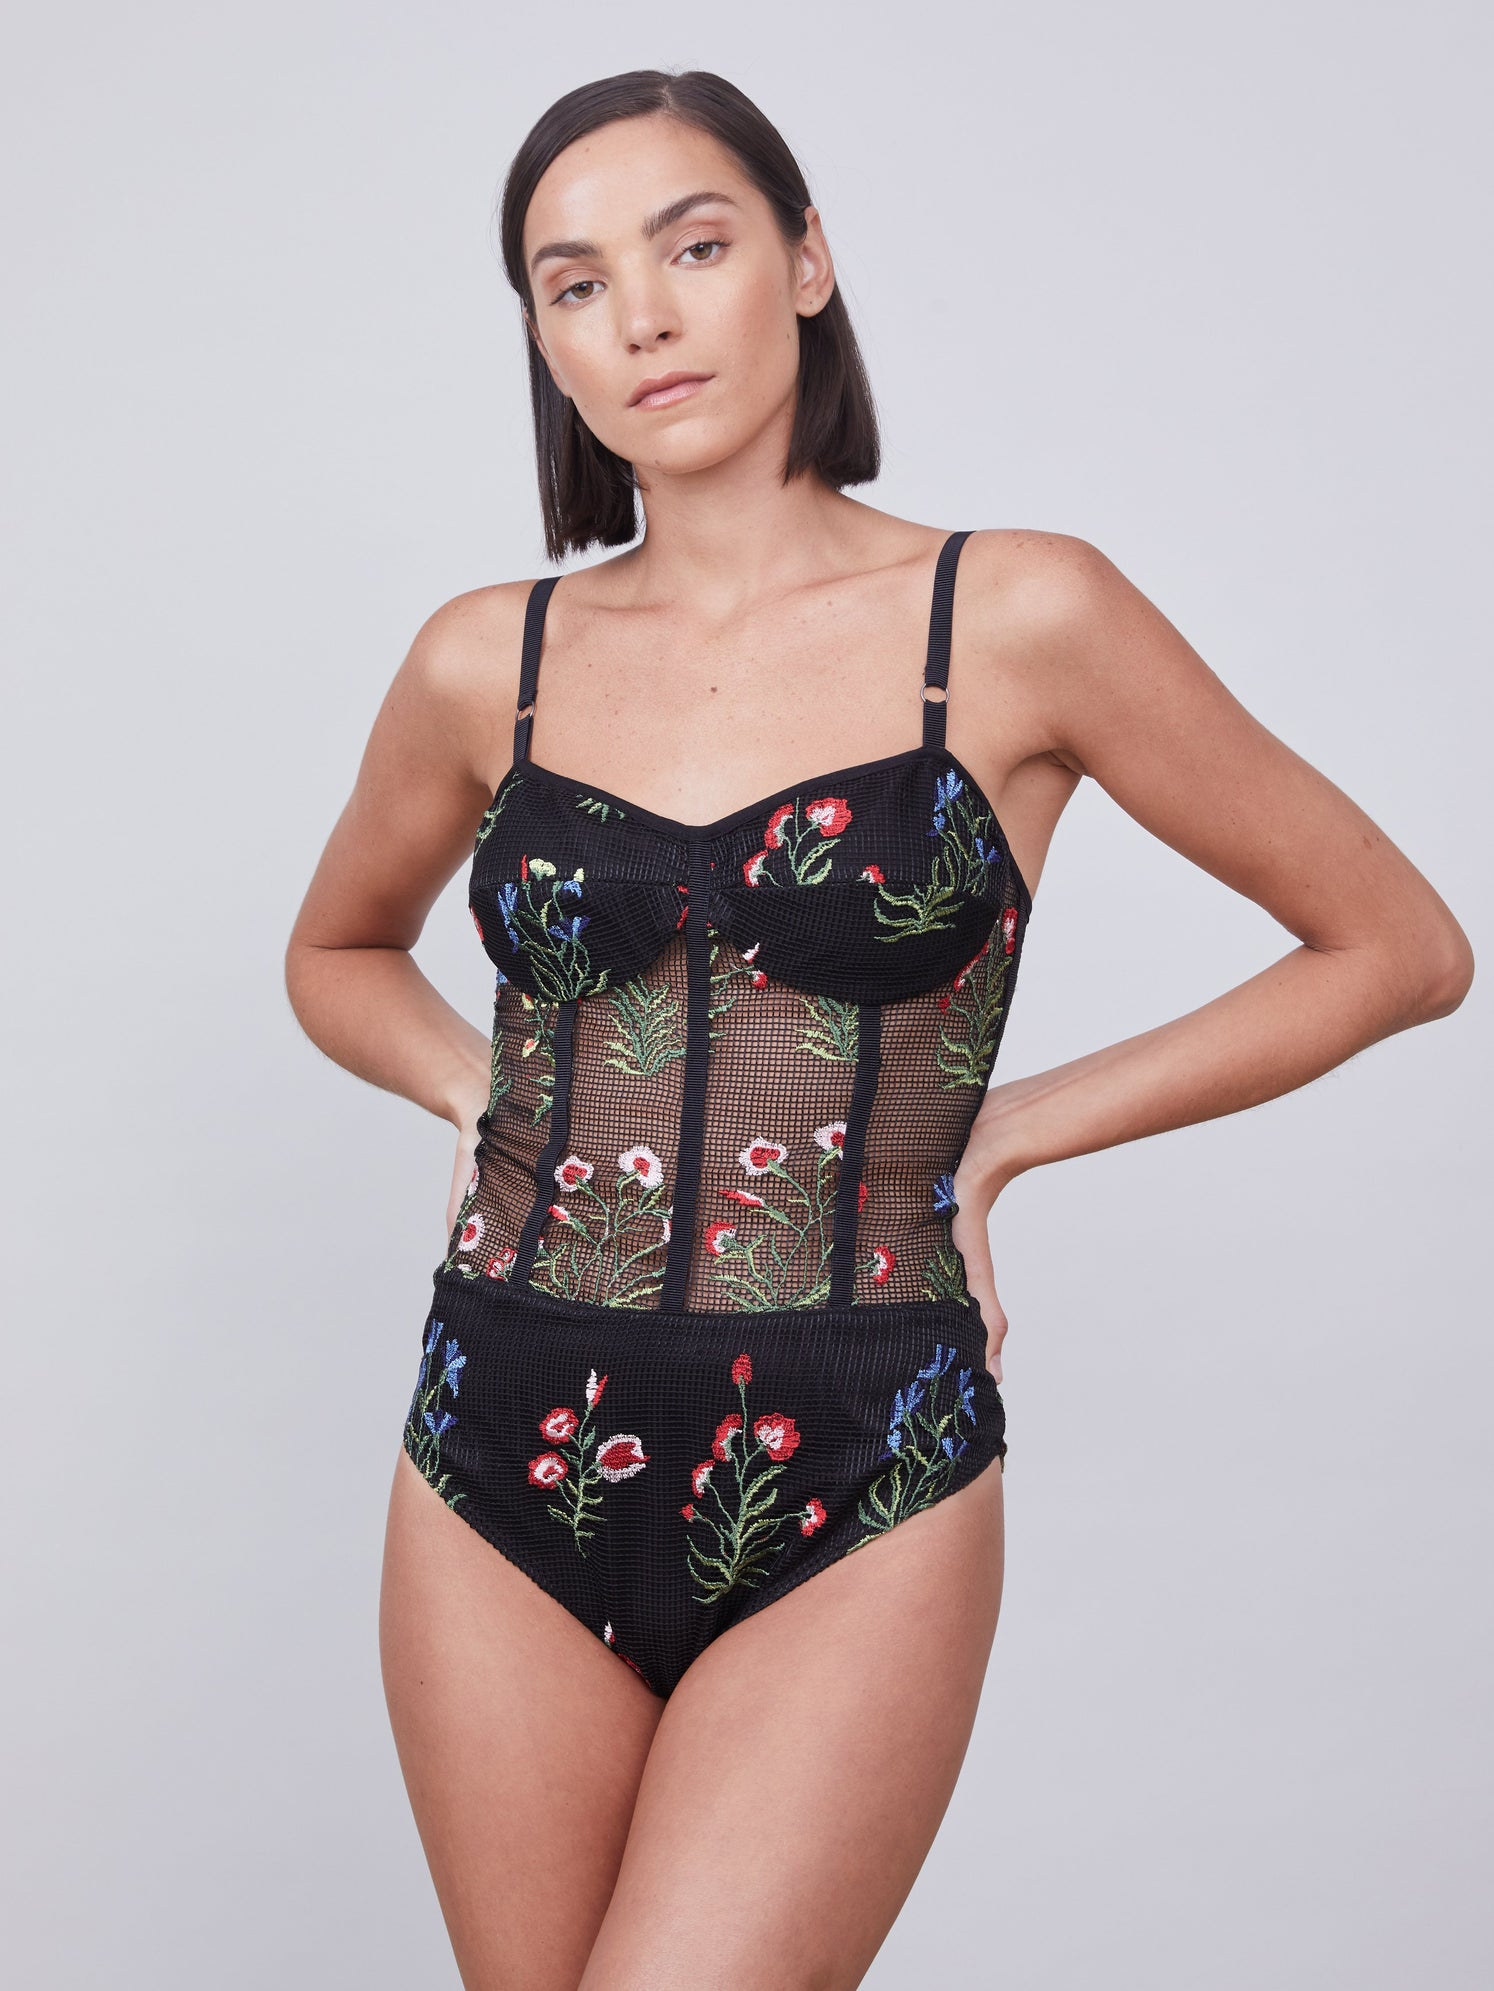 Embroidered mesh bustier bodysuit